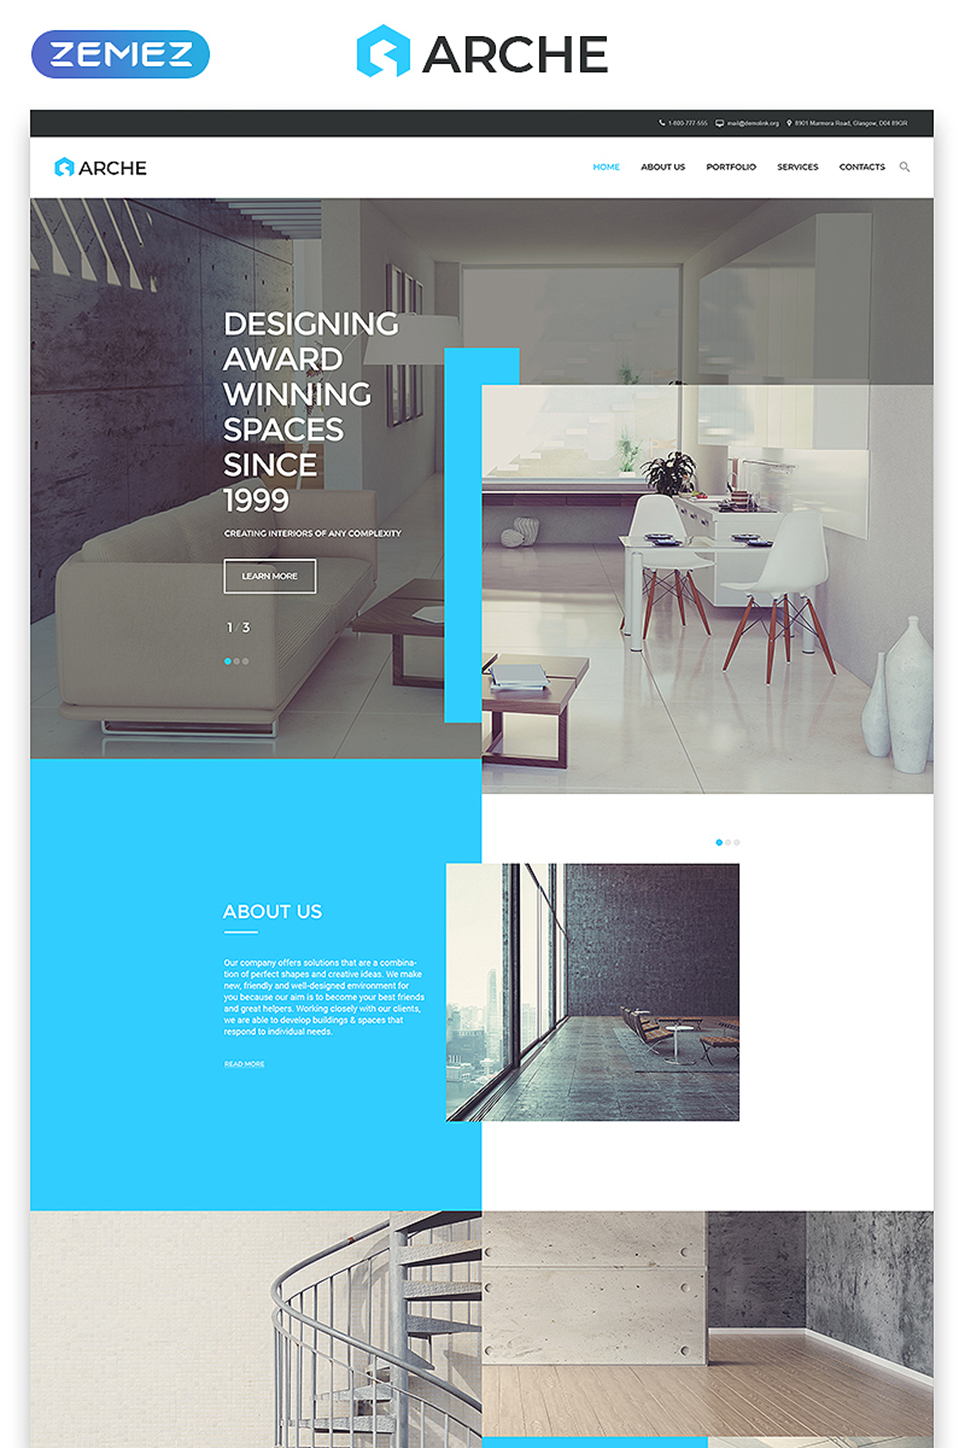 Arche template illustration image